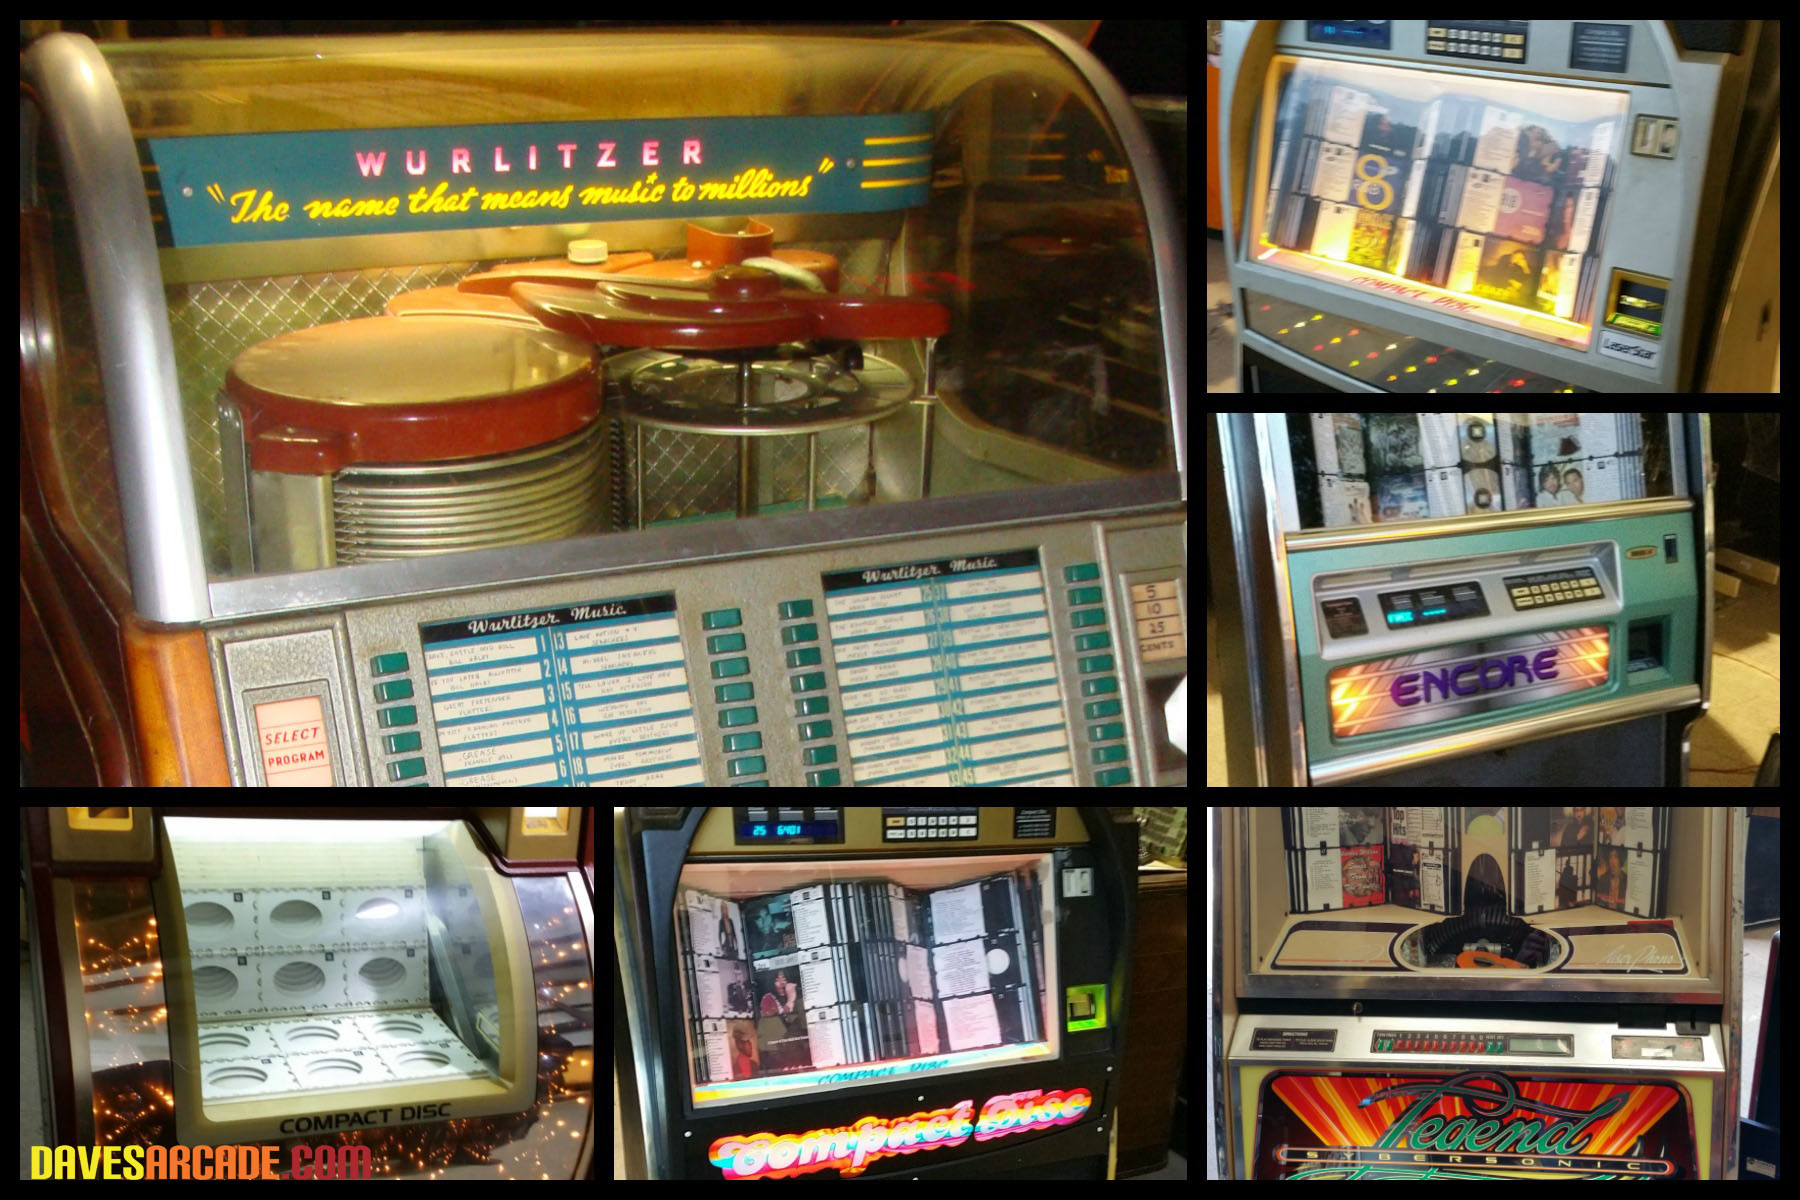 jukebox machines parts cd100 rockola rowe seeburg r-94 r-93 r-92 r-91 r-90 r-89 r-88 r-87 r-86